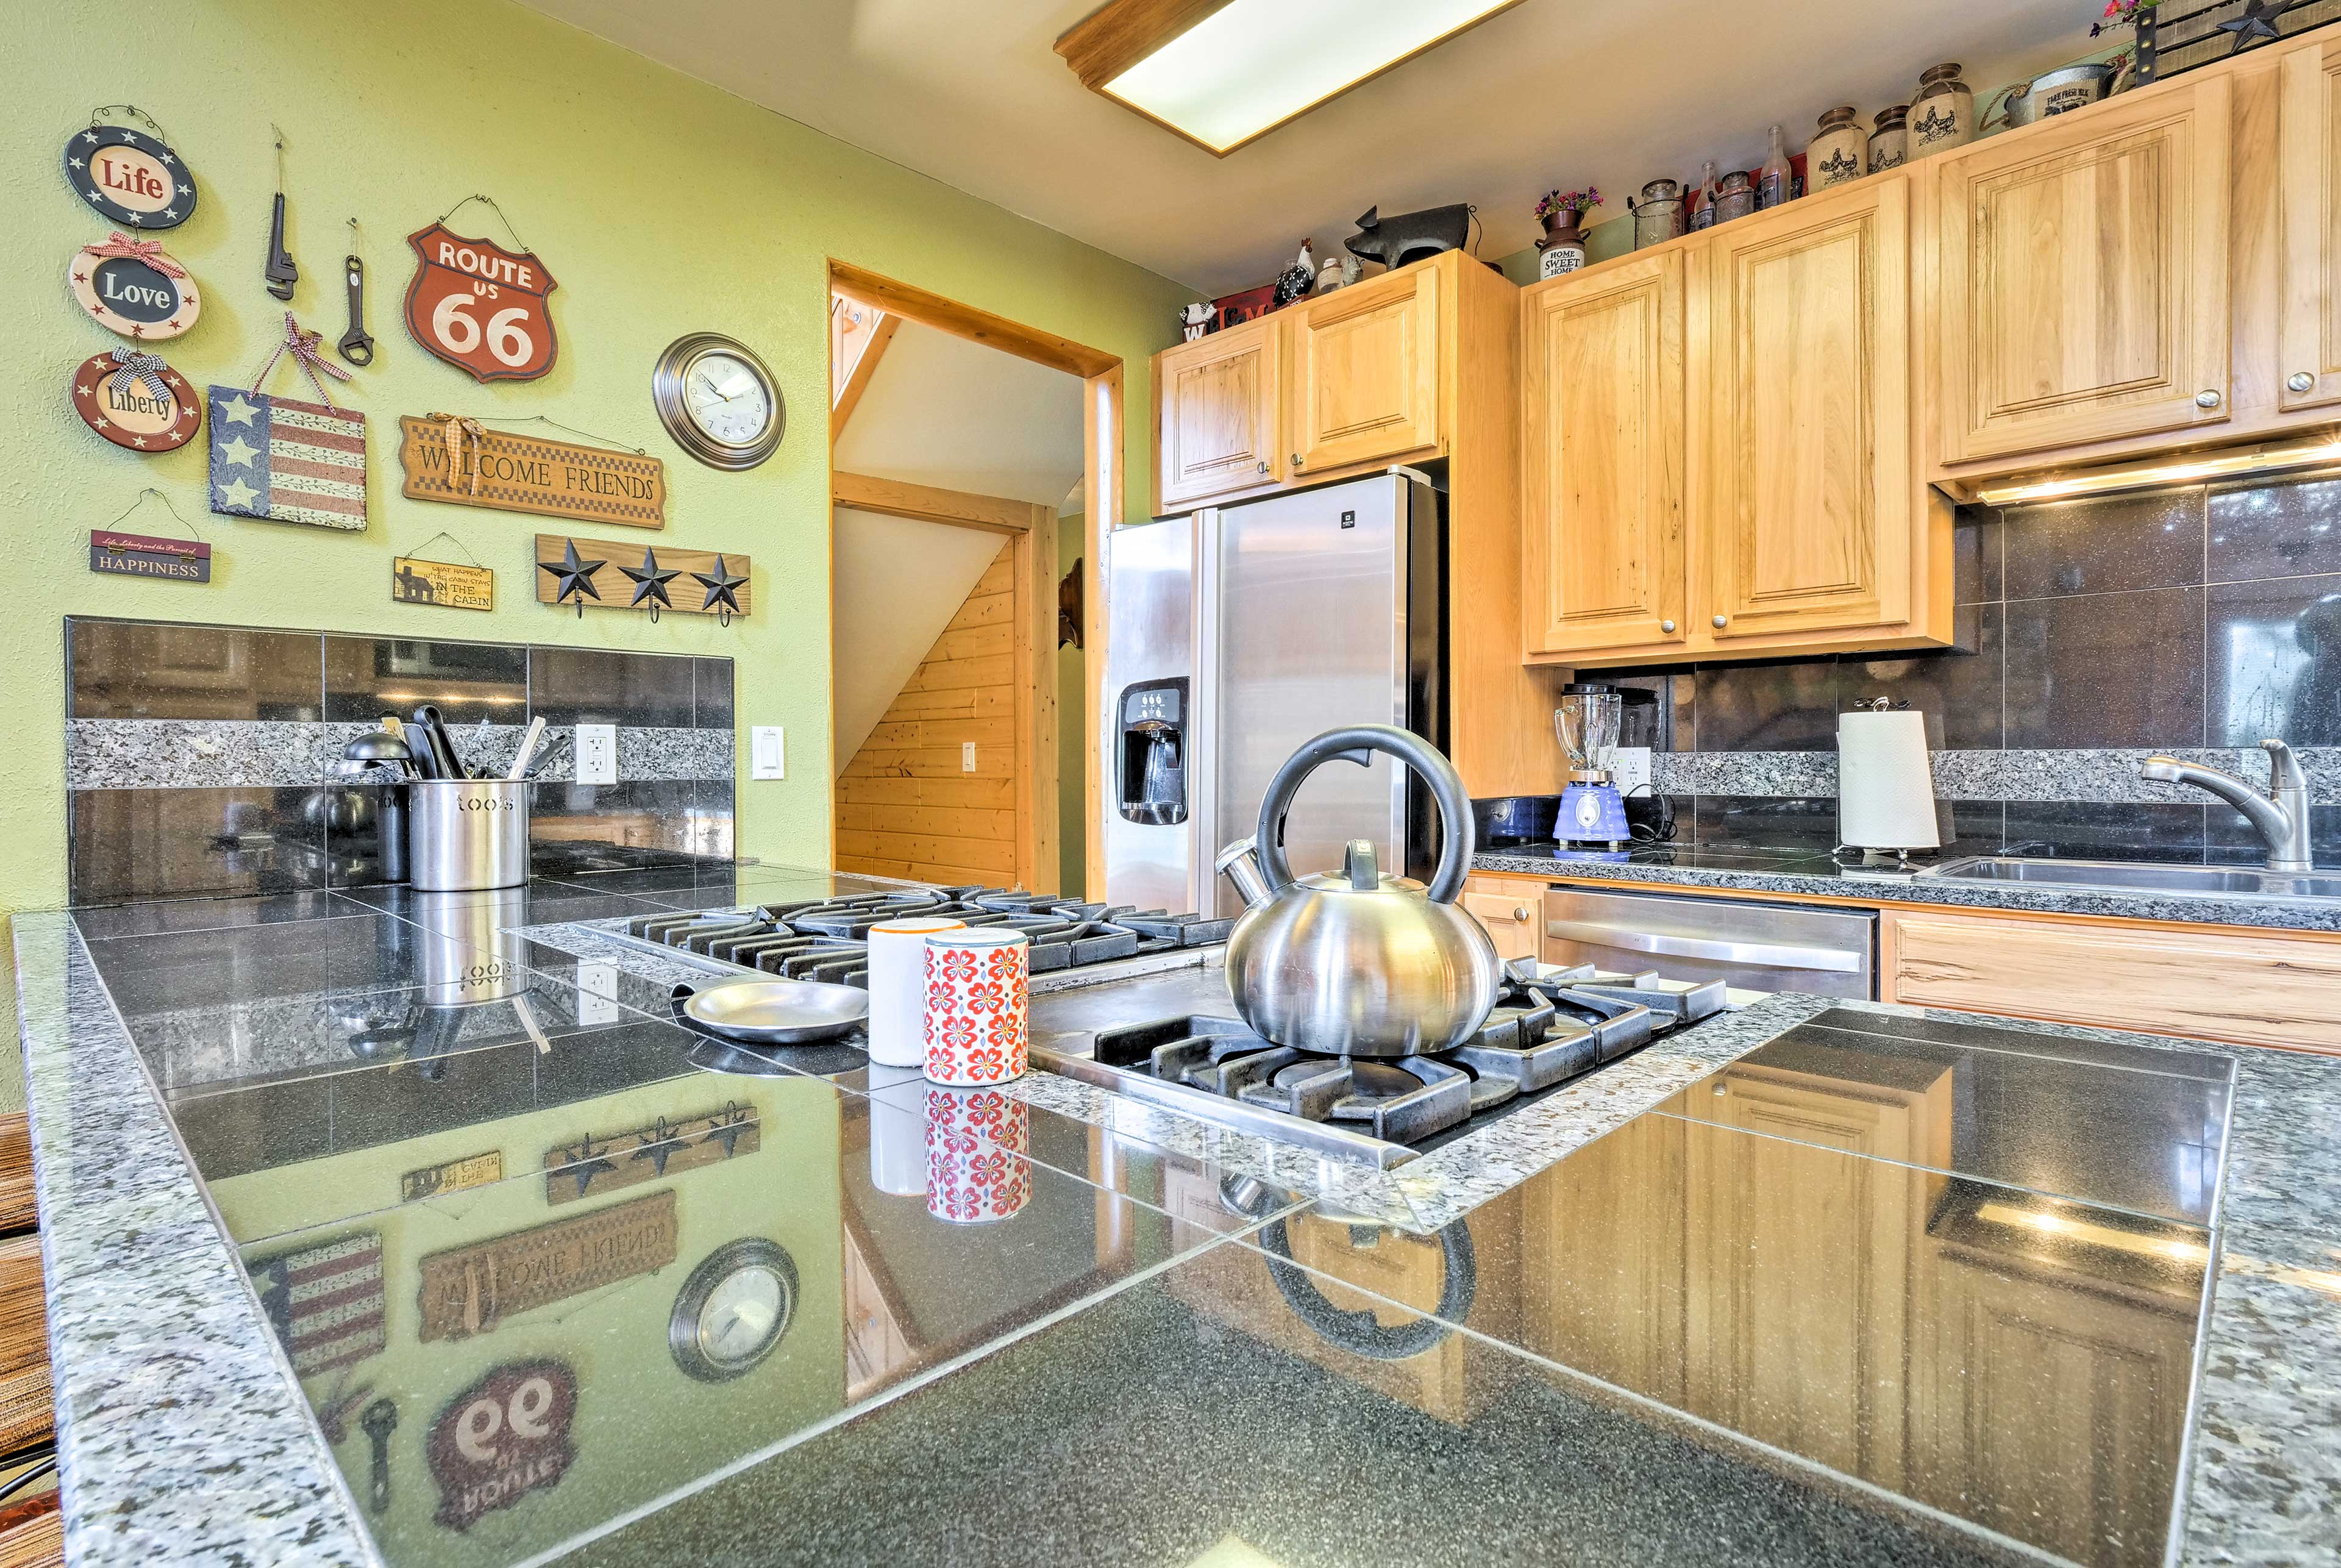 Enjoy a waffle maker, coffee maker, electric skillet, Waterless cookware & more!